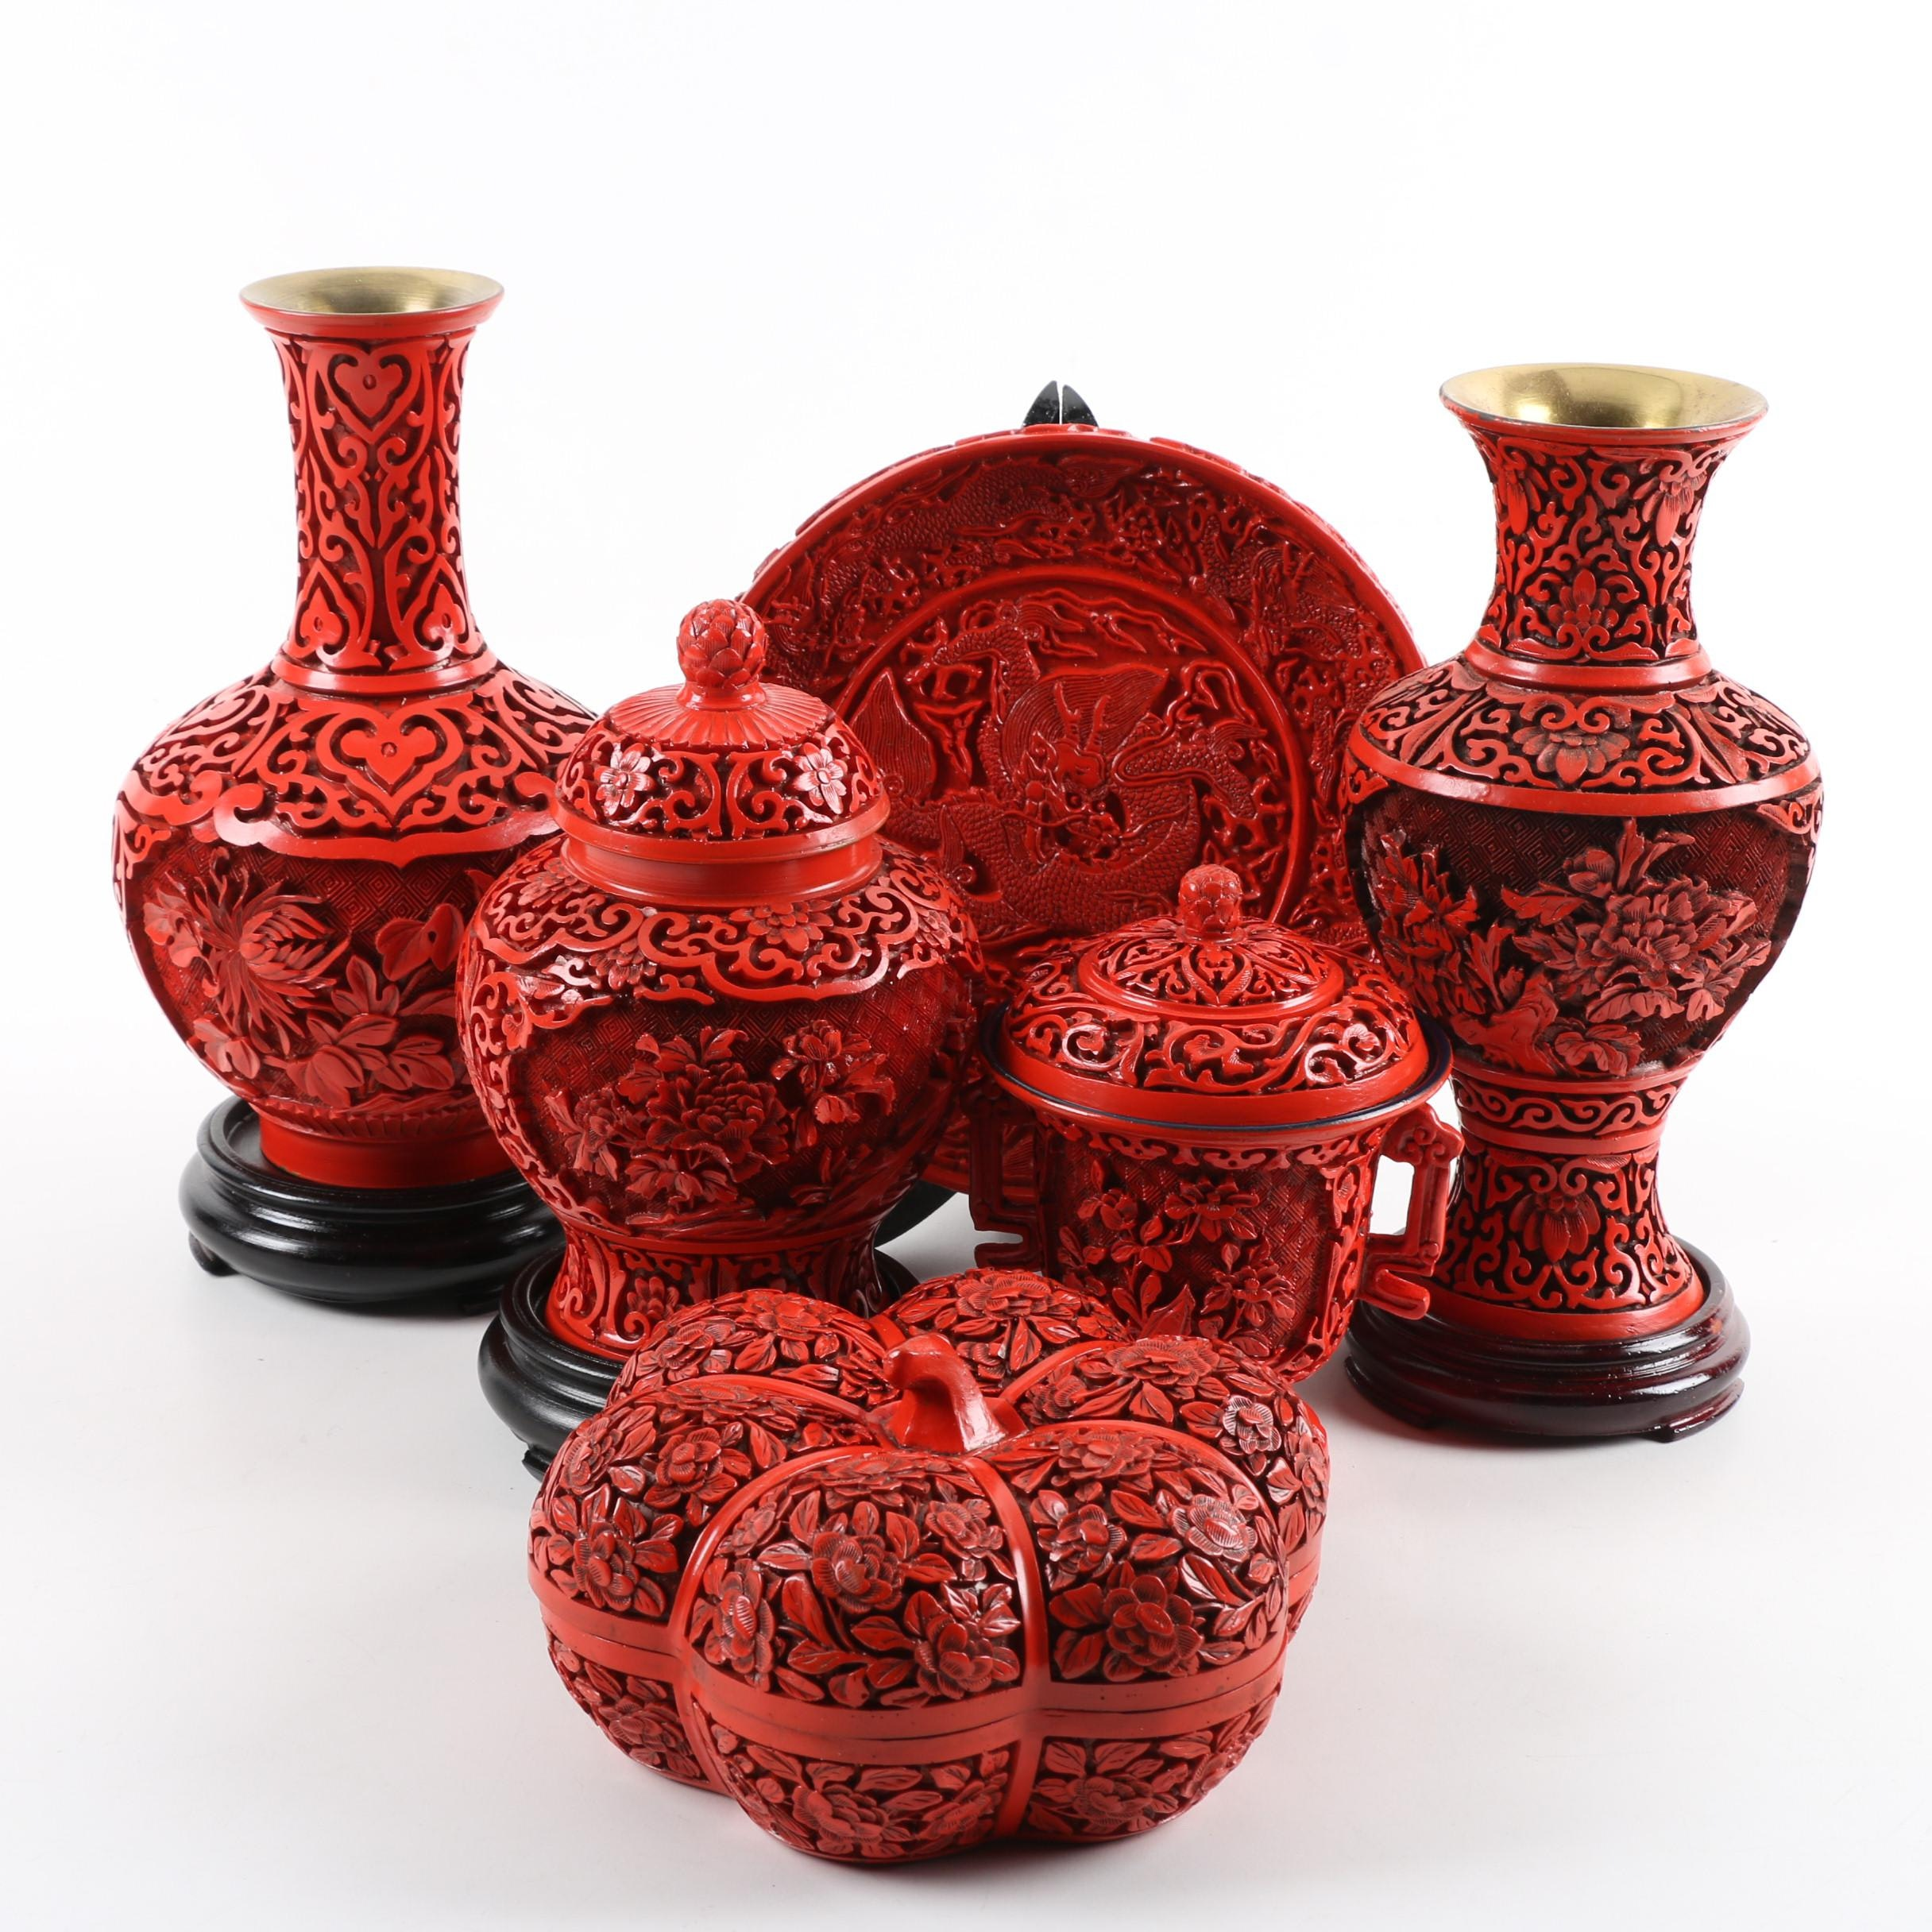 Chinese Carved Cinnabar Style Resin Vases, a Trinket Box, and Plate